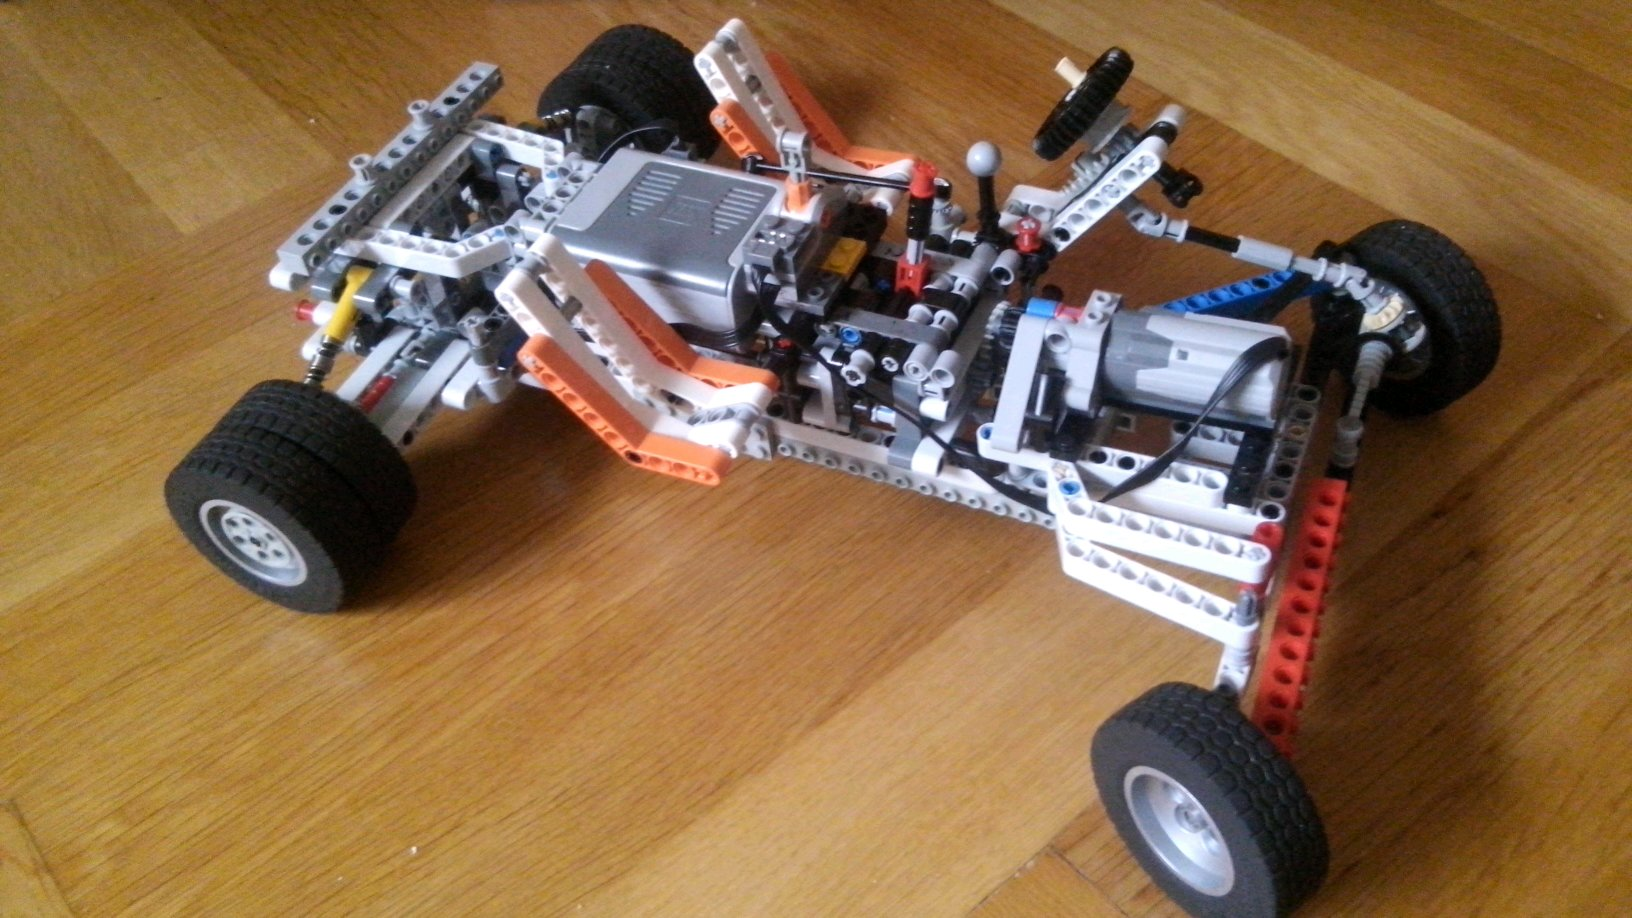 Legocarchallenge This Is My Lego Car Frame